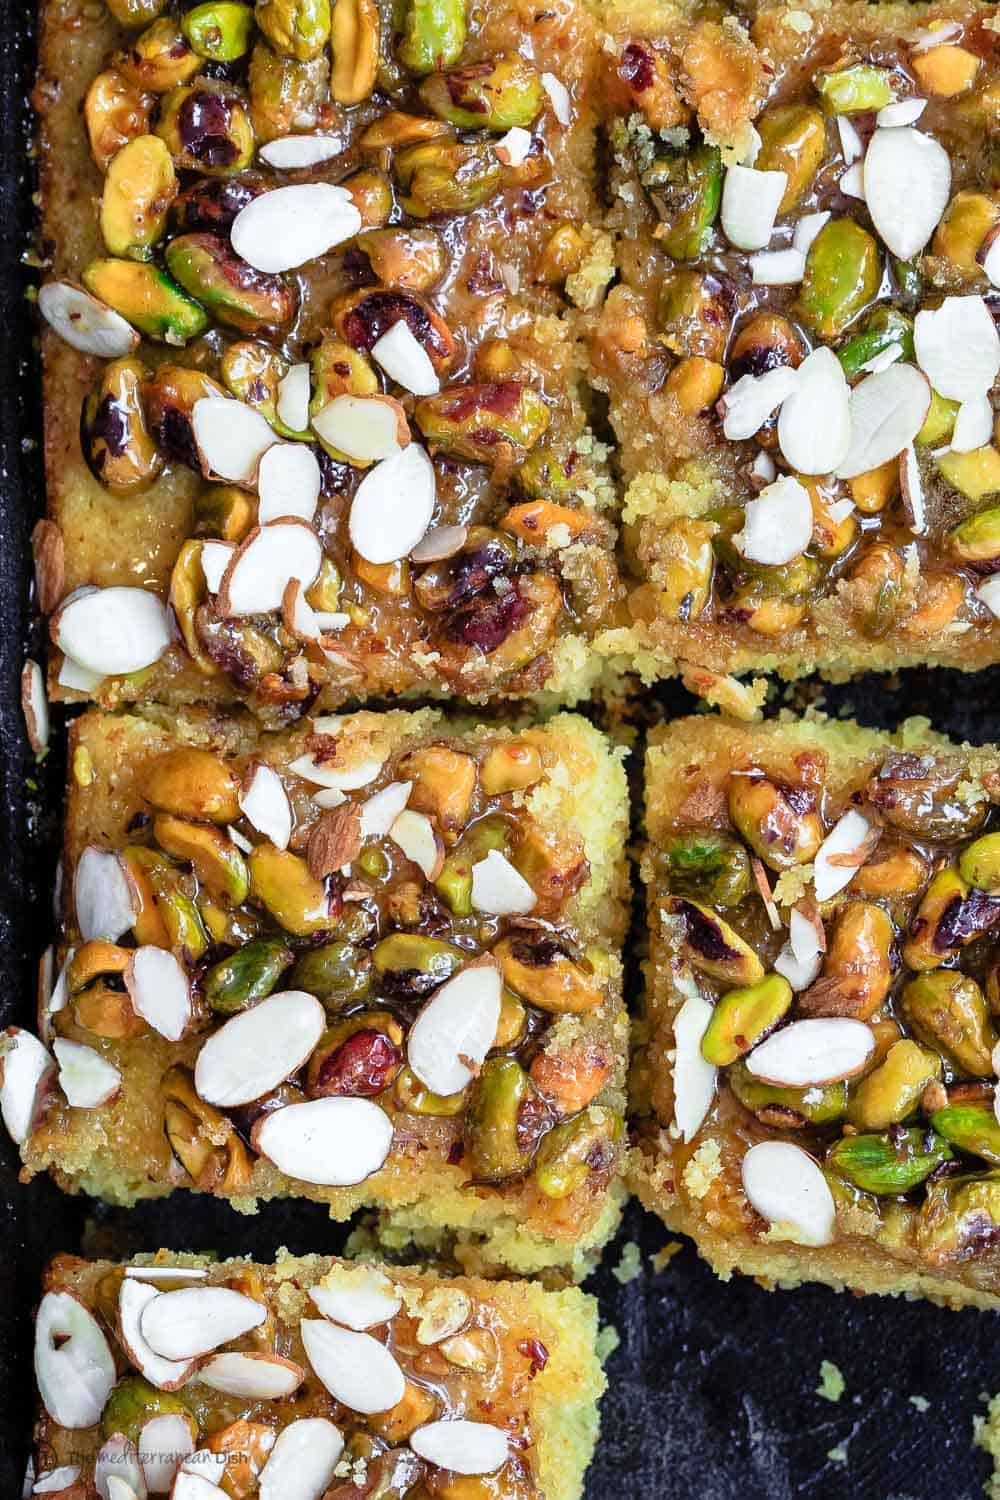 Greek Honey Orange Cake with pistachios and almonds. Sliced for 15 people